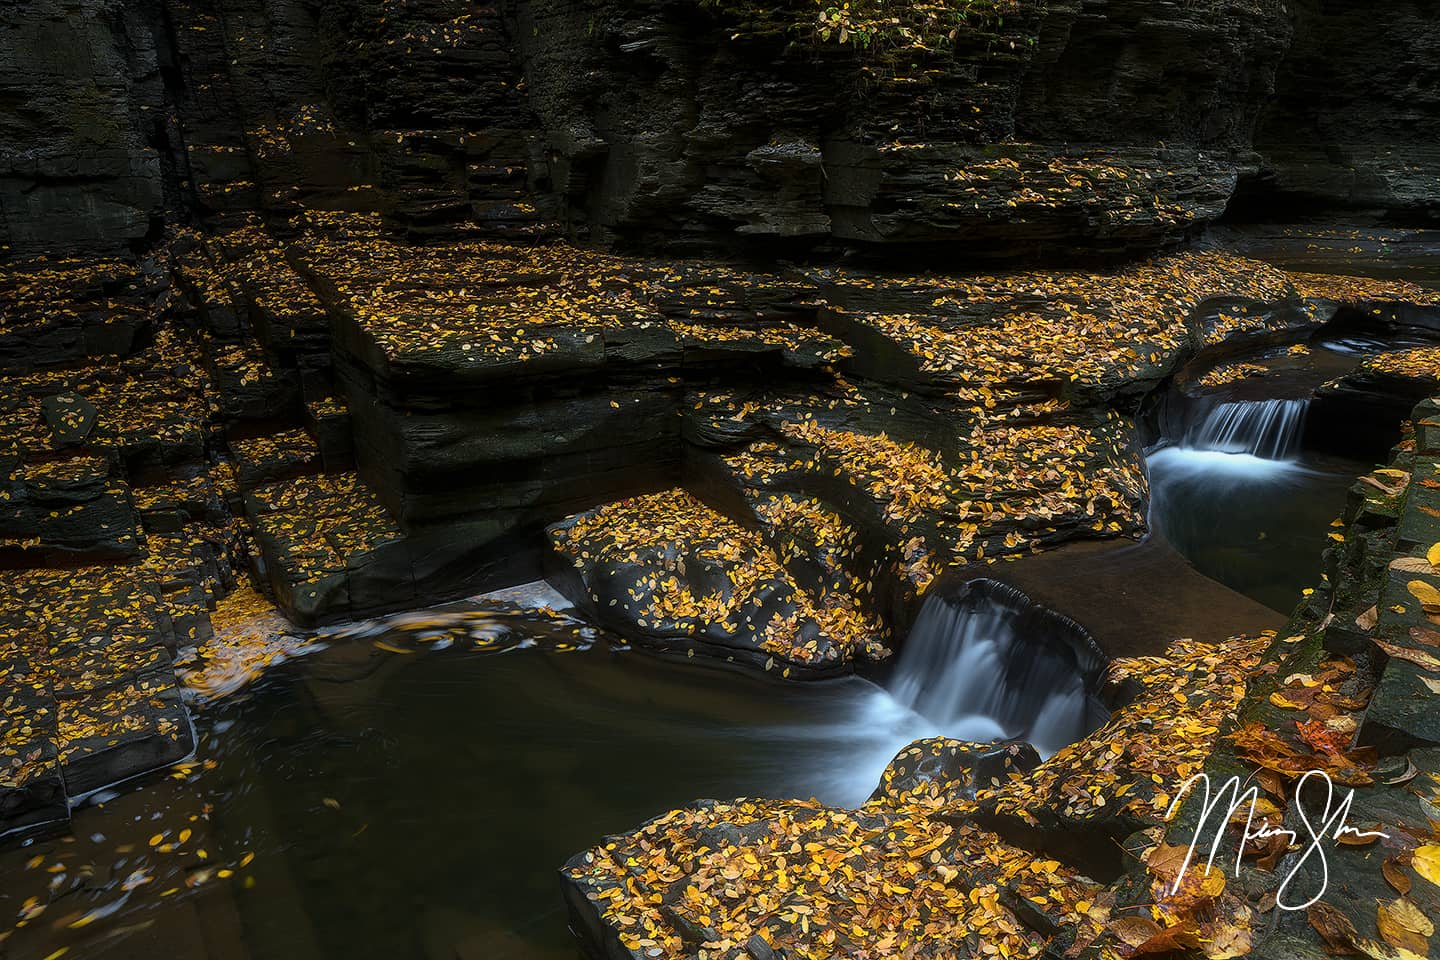 Open edition fine art print of Watkins Glen Gold from Mickey Shannon Photography. Location: Watkins Glen State Park, NY